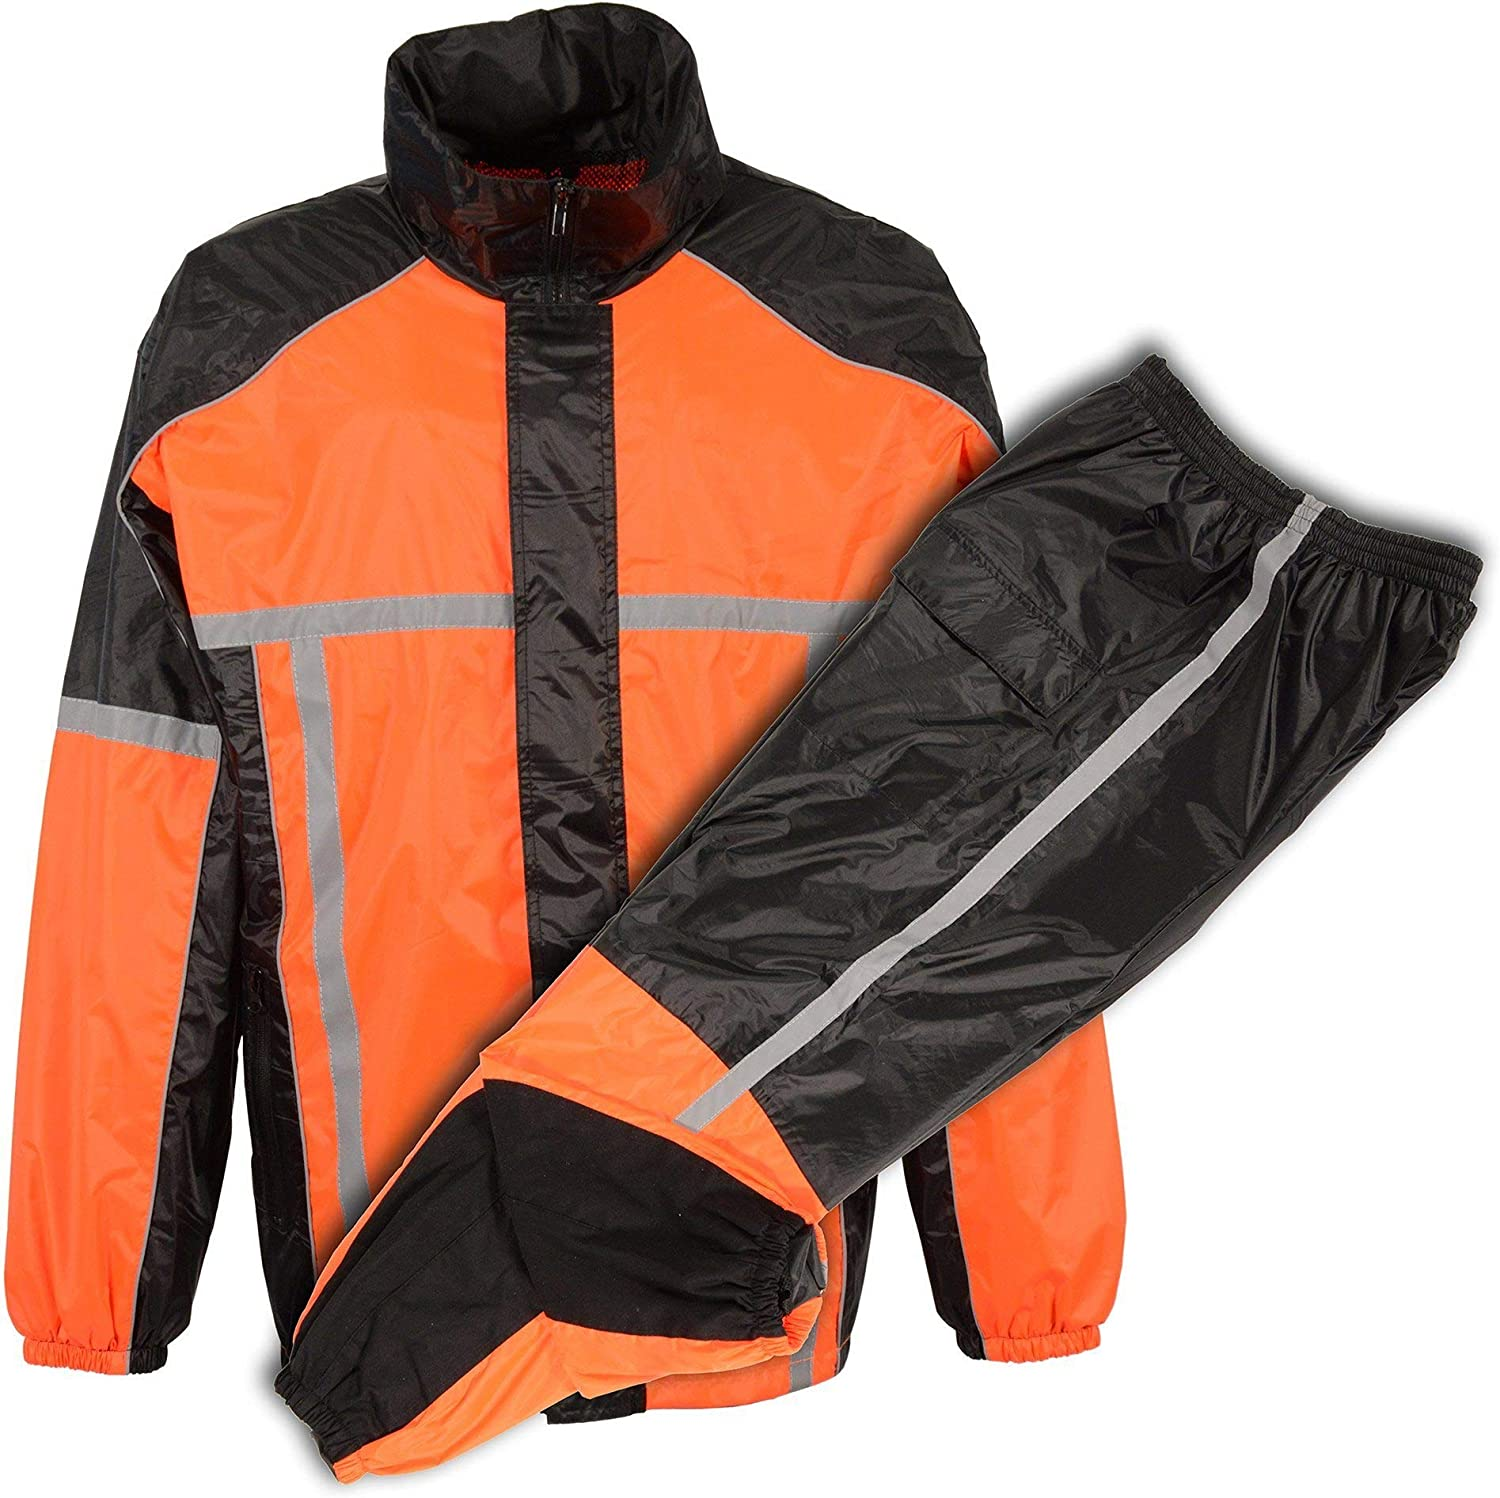 Milwaukee Performance Men's Water Resistant Rain Suit with Reflective Tape